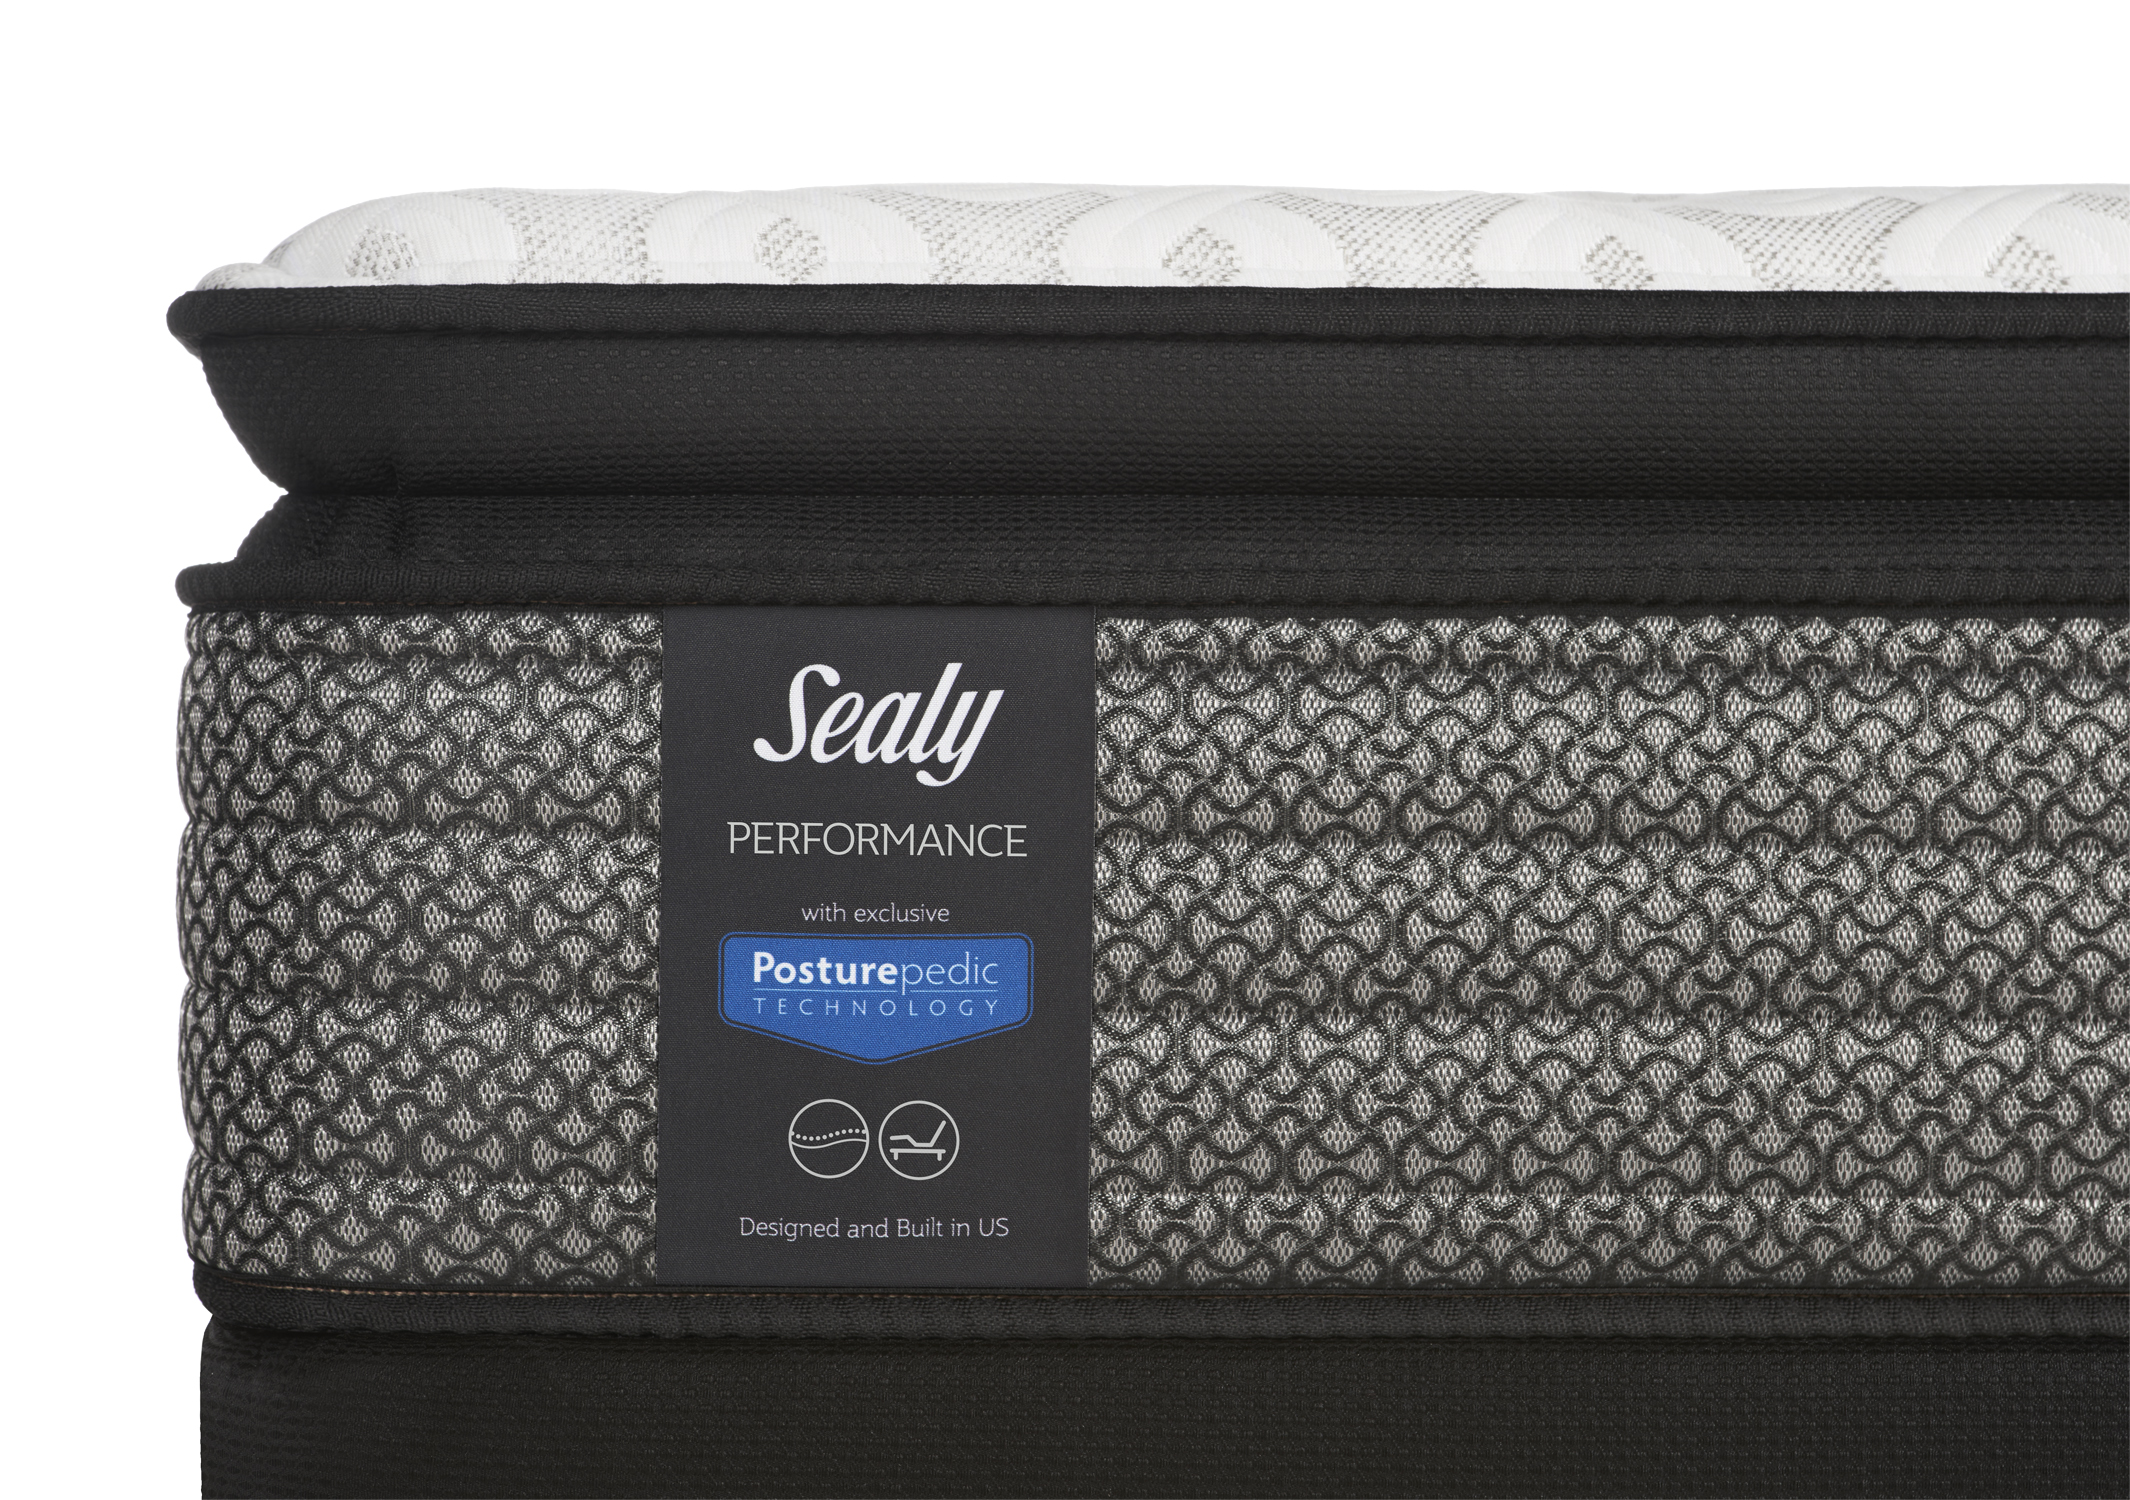 Sealy Response Performance Mattress Reviews Goodbedcom